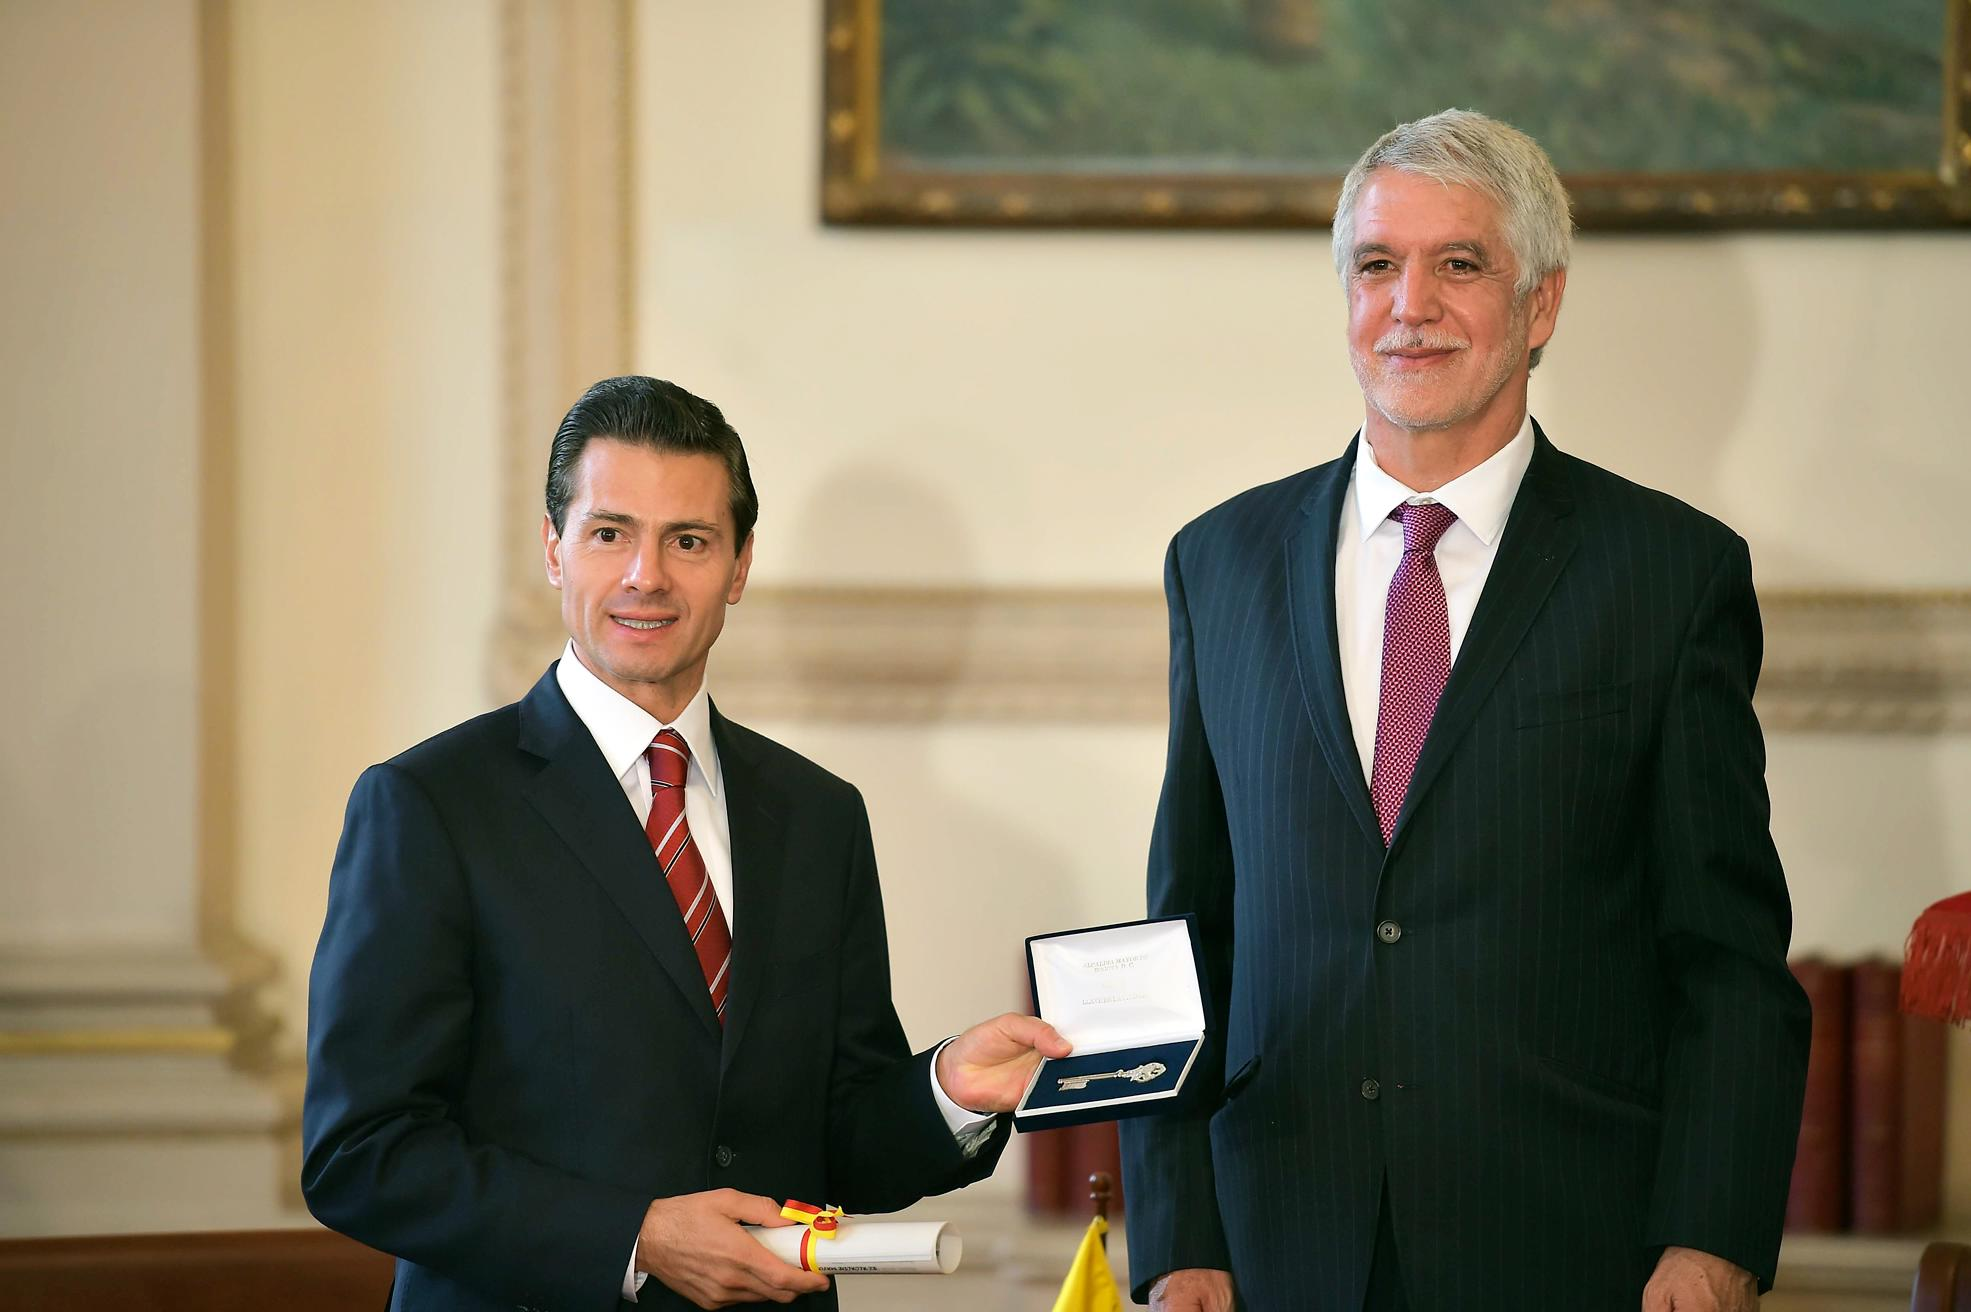 The Mexican president met with Mayor of Bogota Enrique Penalosa, from whom he received the Keys to the City.